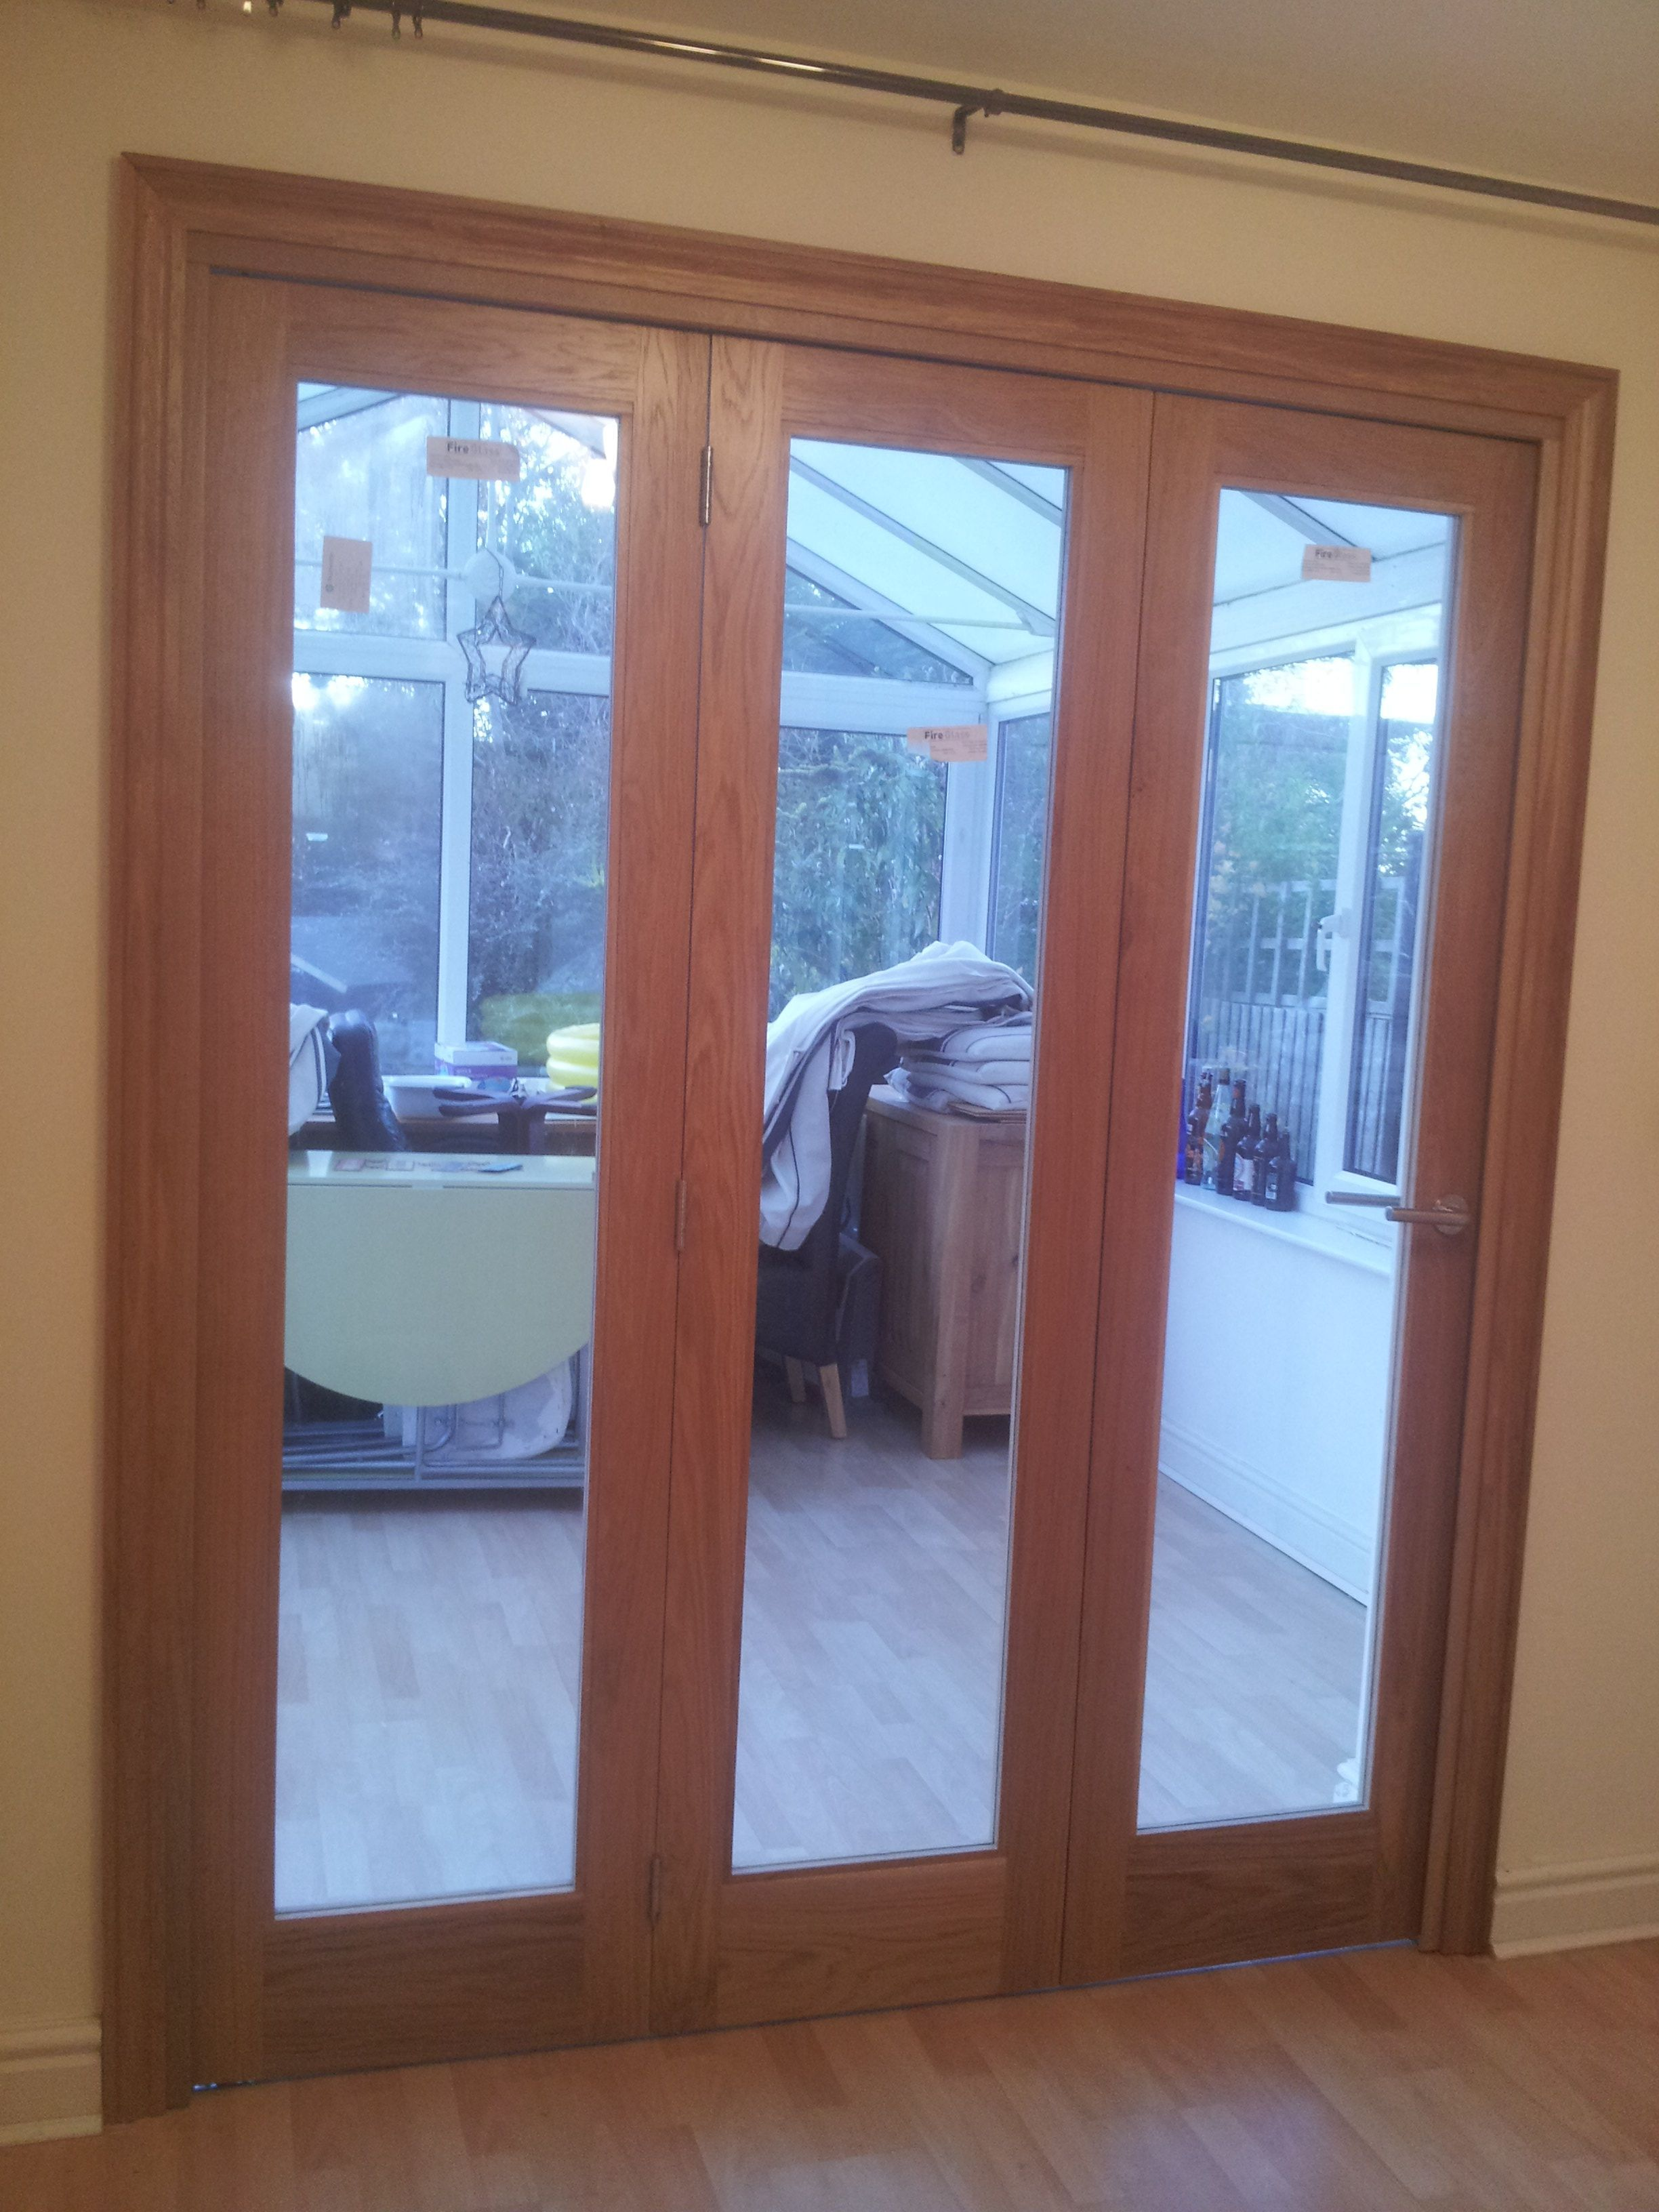 Tri fold sliding room divider in white oak with clear safety glass